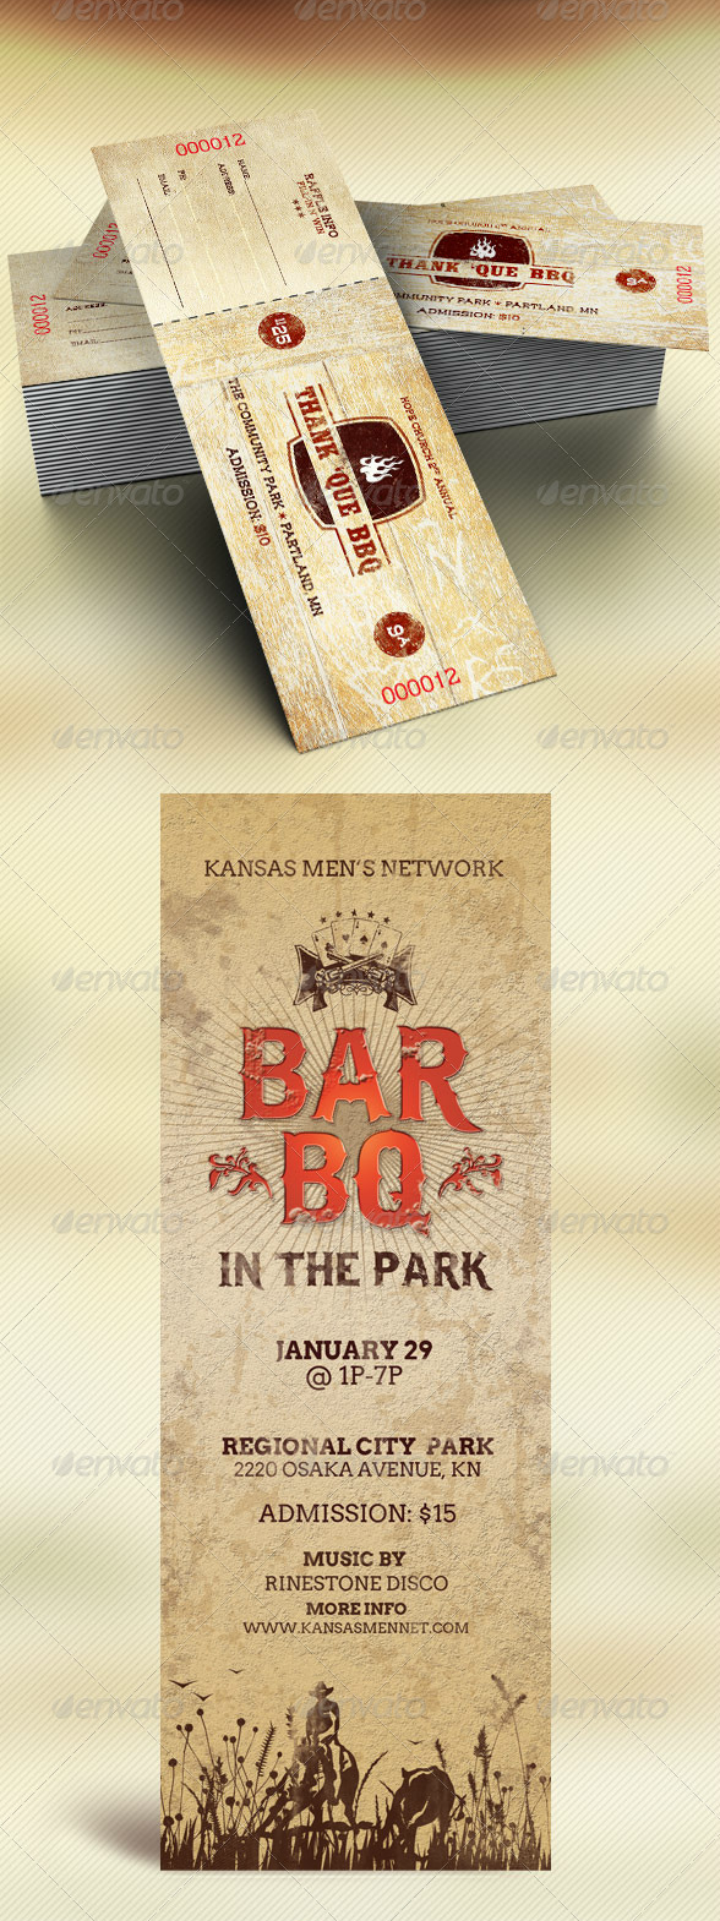 barbecue-restaurant-flyer-and-ticket-template-bundle